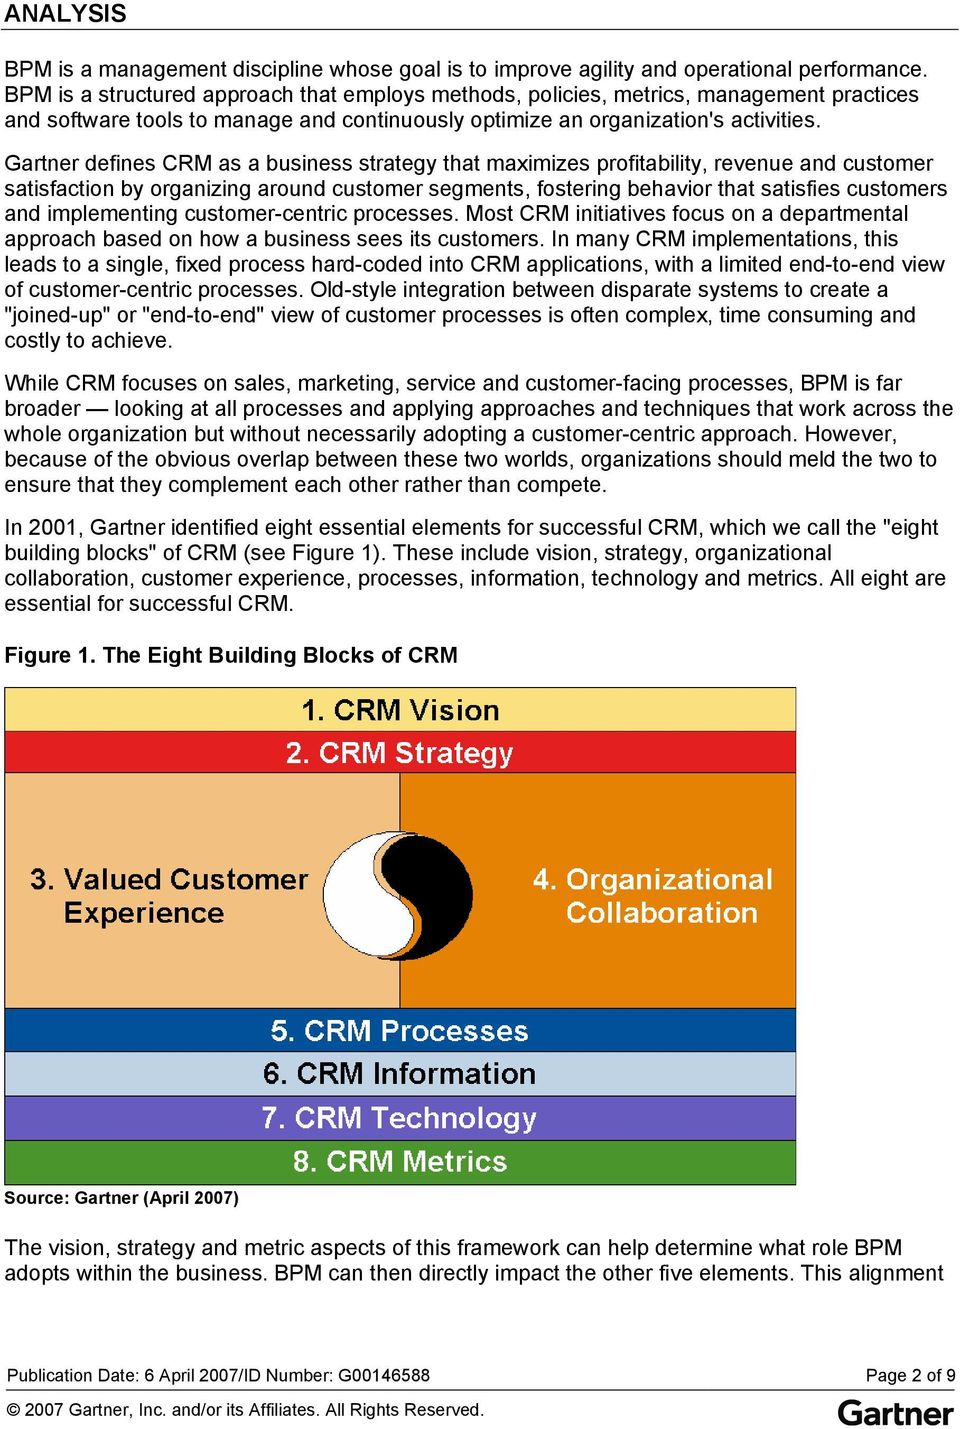 Gartner defines CRM as a business strategy that maximizes profitability, revenue and customer satisfaction by organizing around customer segments, fostering behavior that satisfies customers and